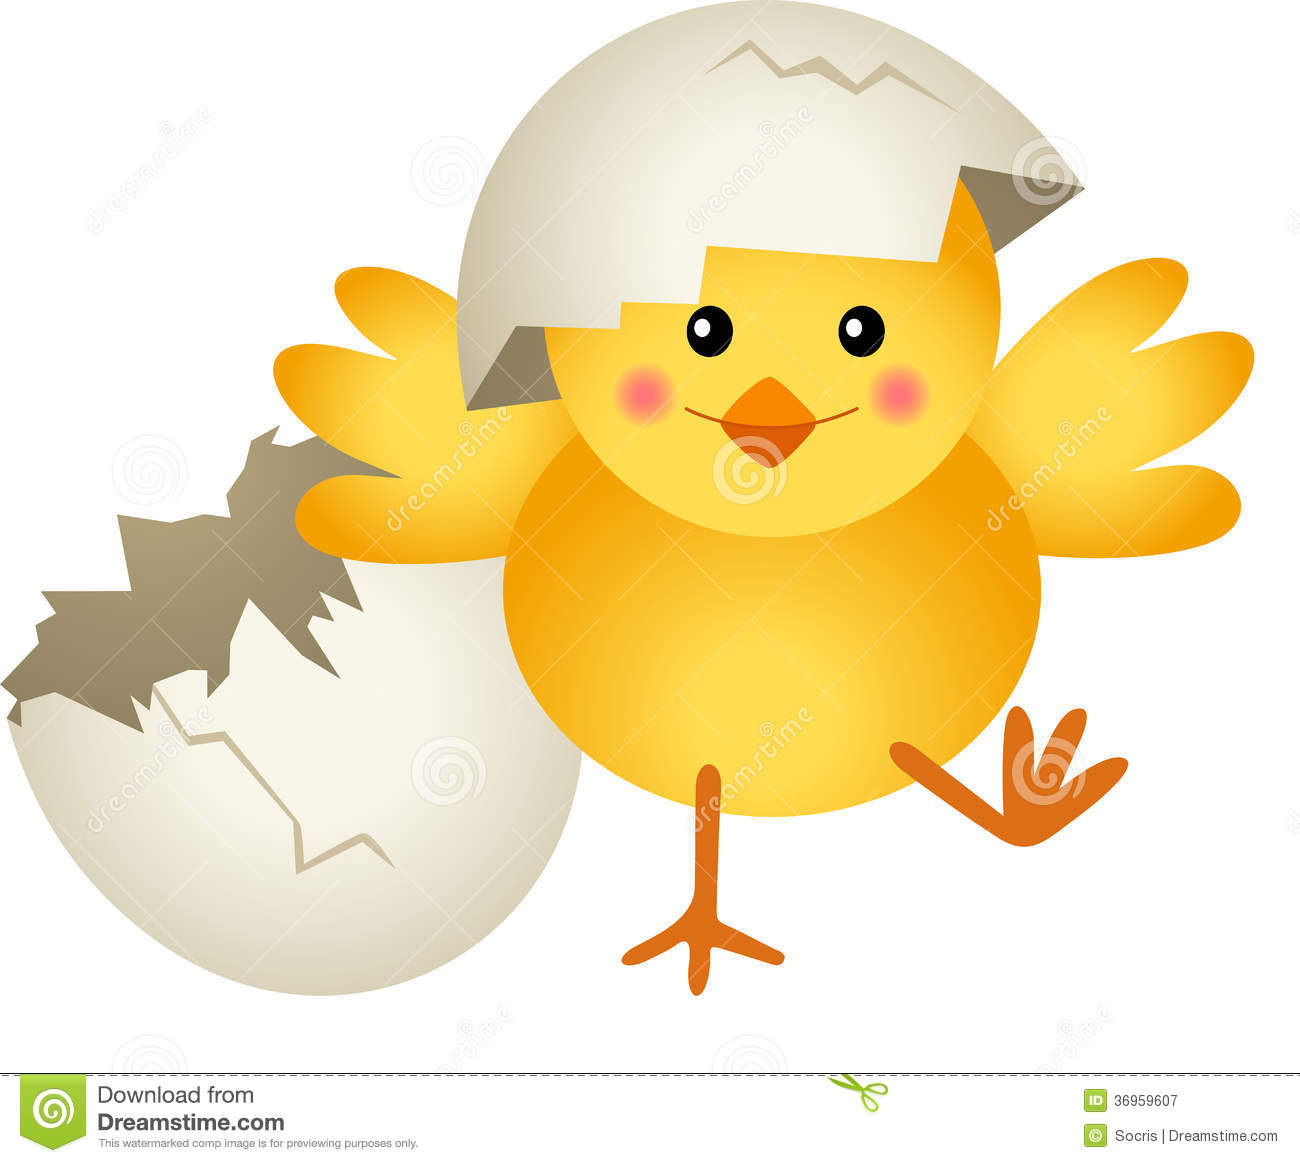 Chicken coming out of an egg clipart svg transparent download Chick Coming Out Of Egg Clipart svg transparent download